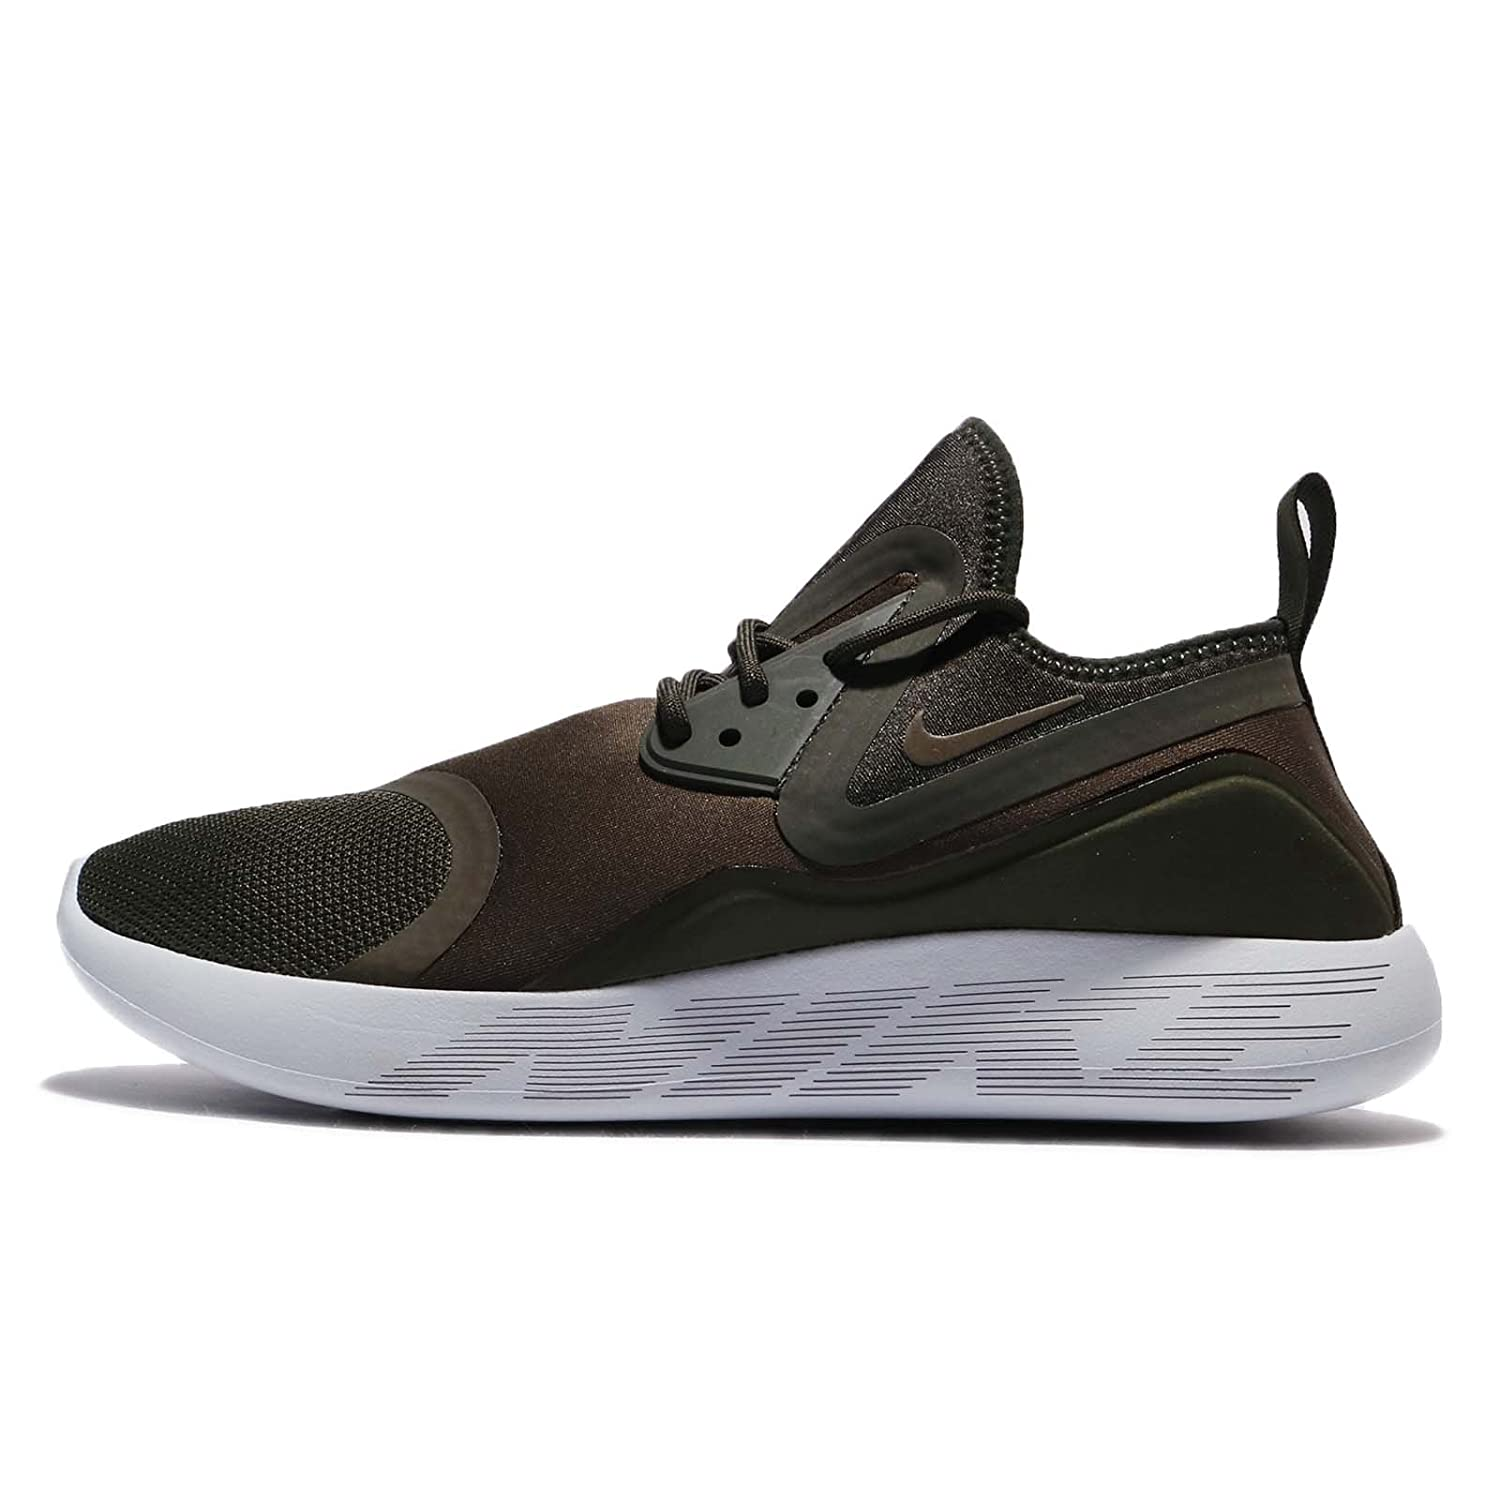 best service d2ee4 55b18 Amazon.com  Nike Mens Lunarcharge Essential Round Toe Training Running  Shoes  Road Running